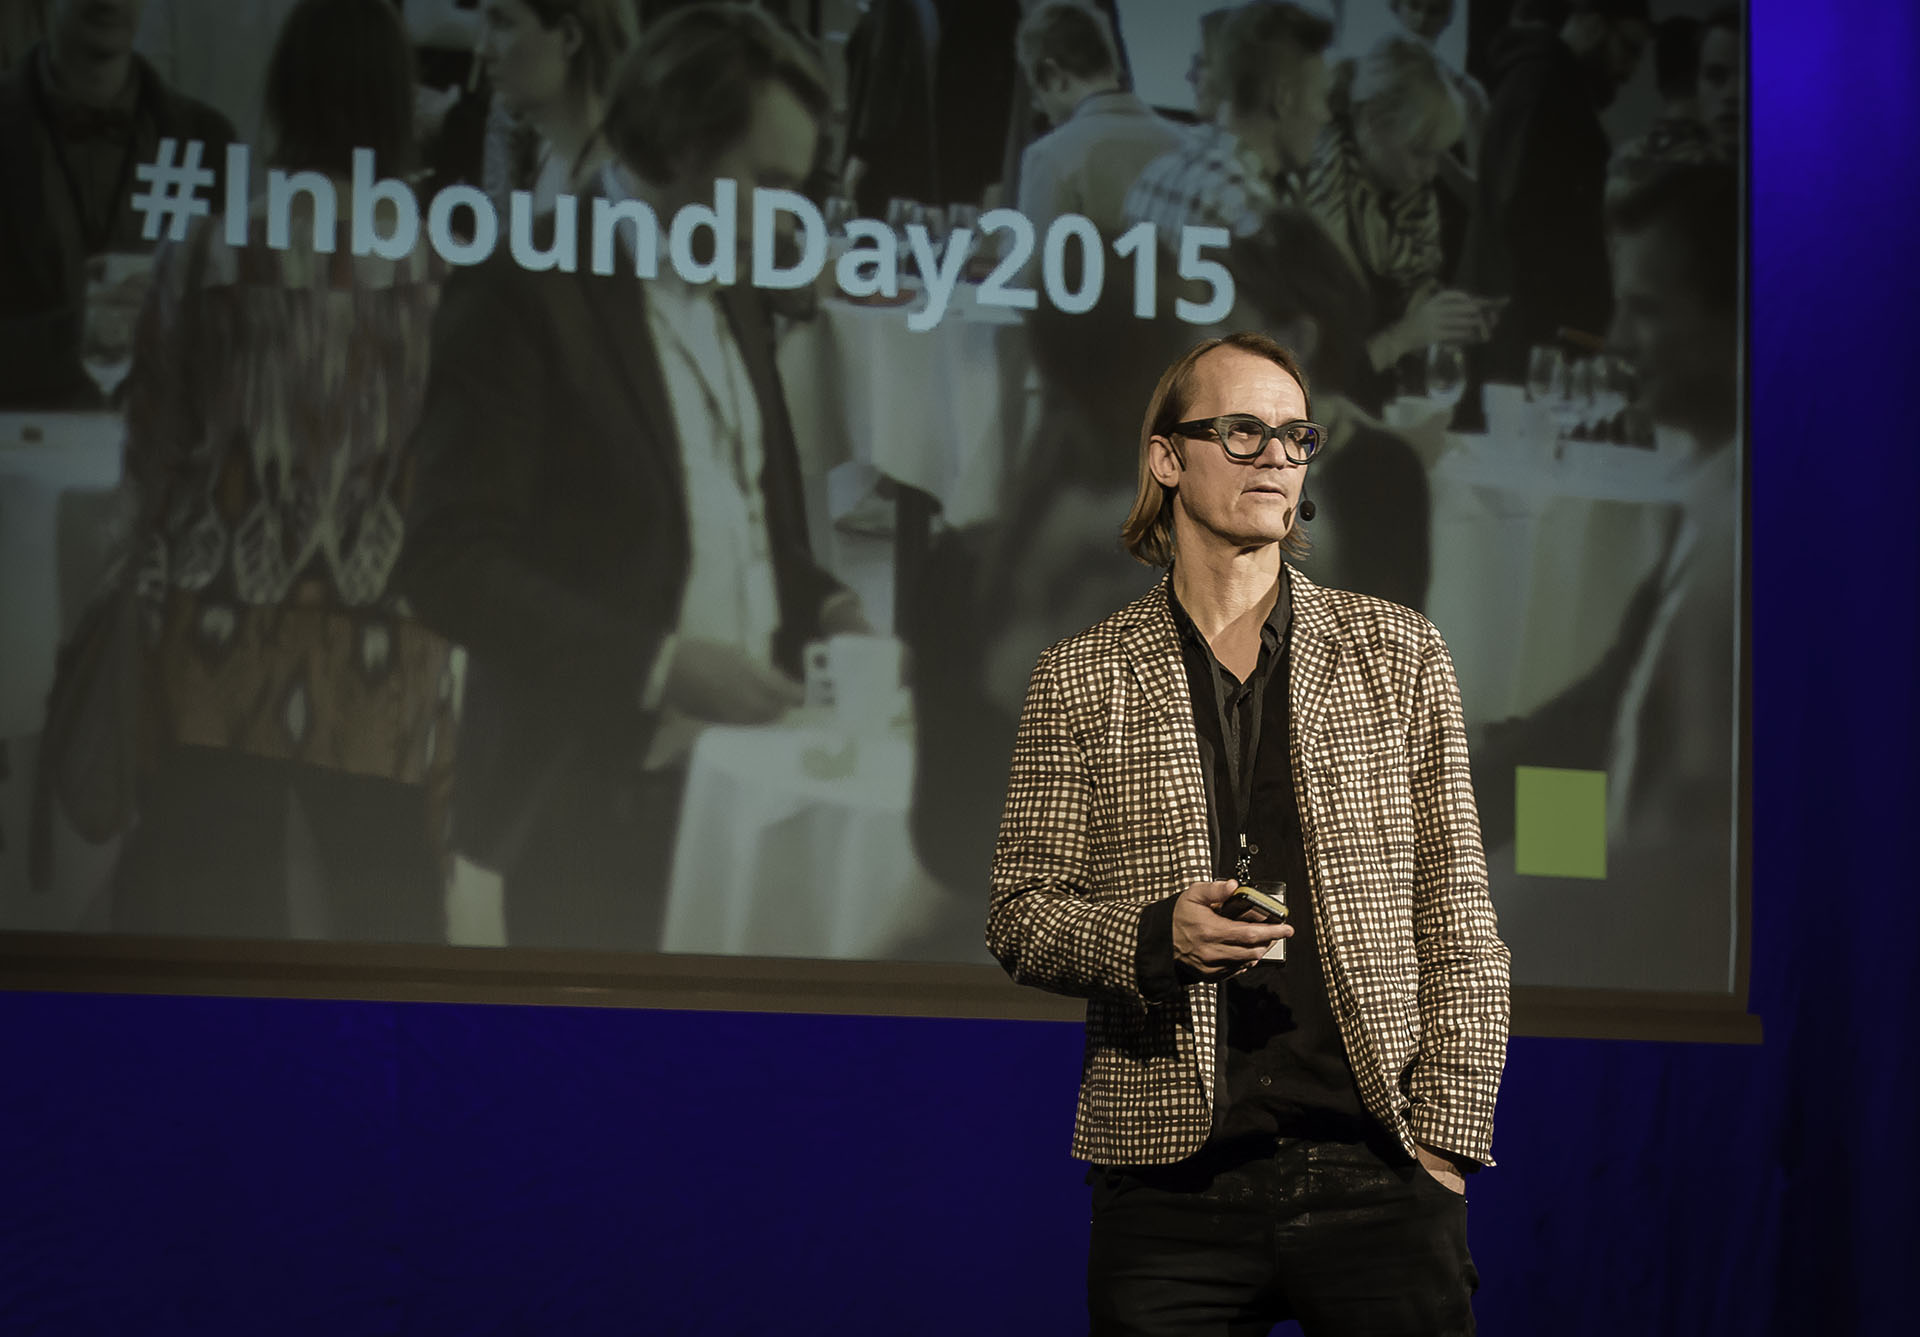 Report from #InboundDay2015, part 1/3